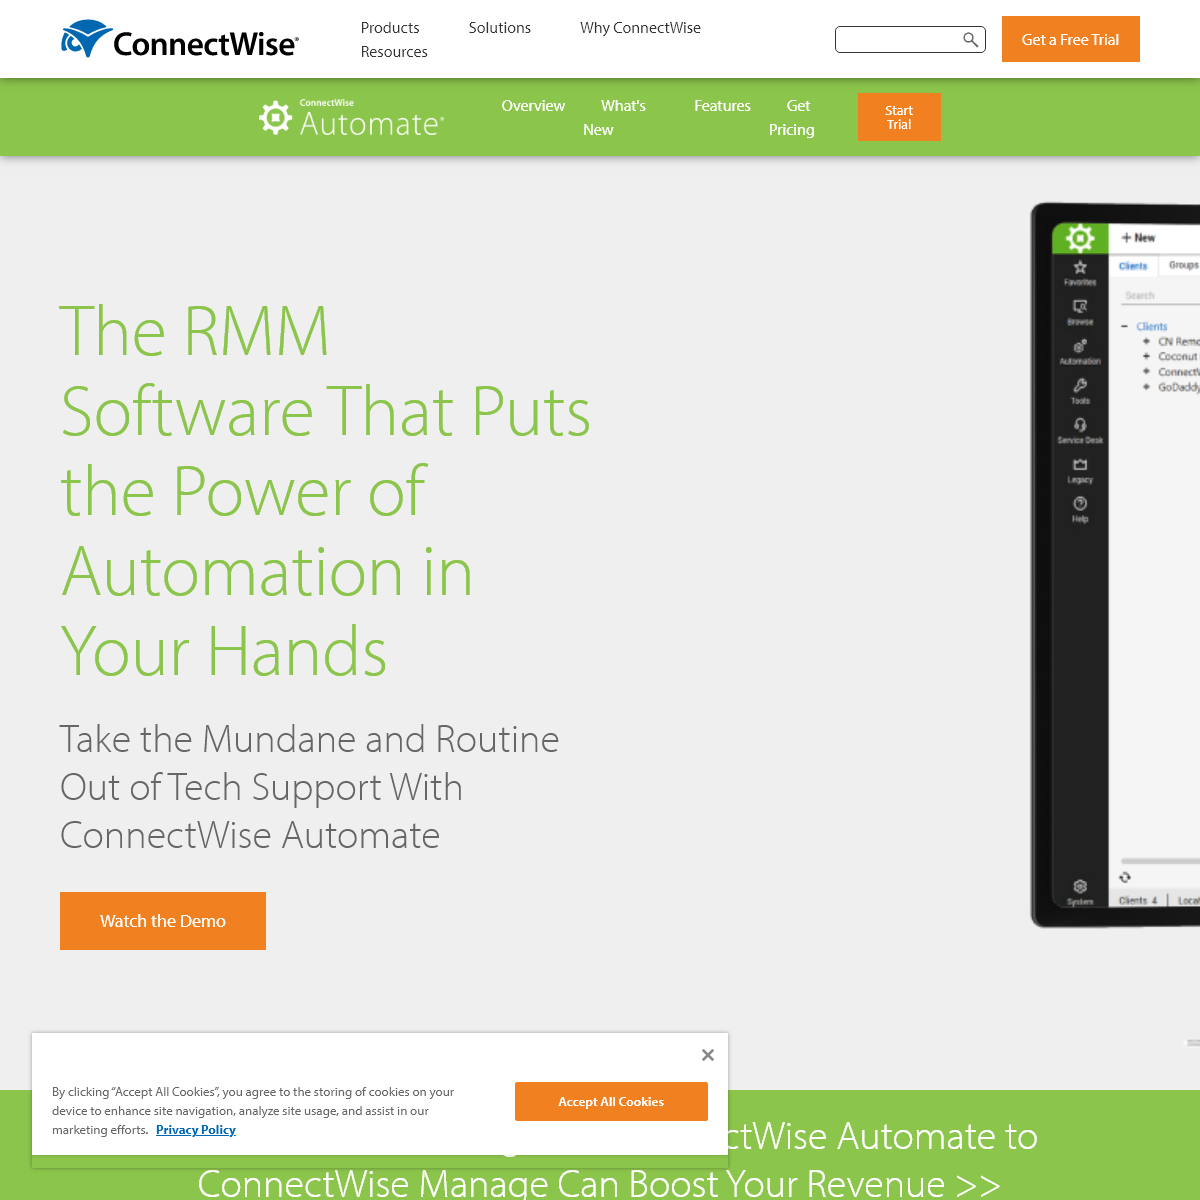 Remote Monitoring and Management (RMM) Software - ConnectWise Automate